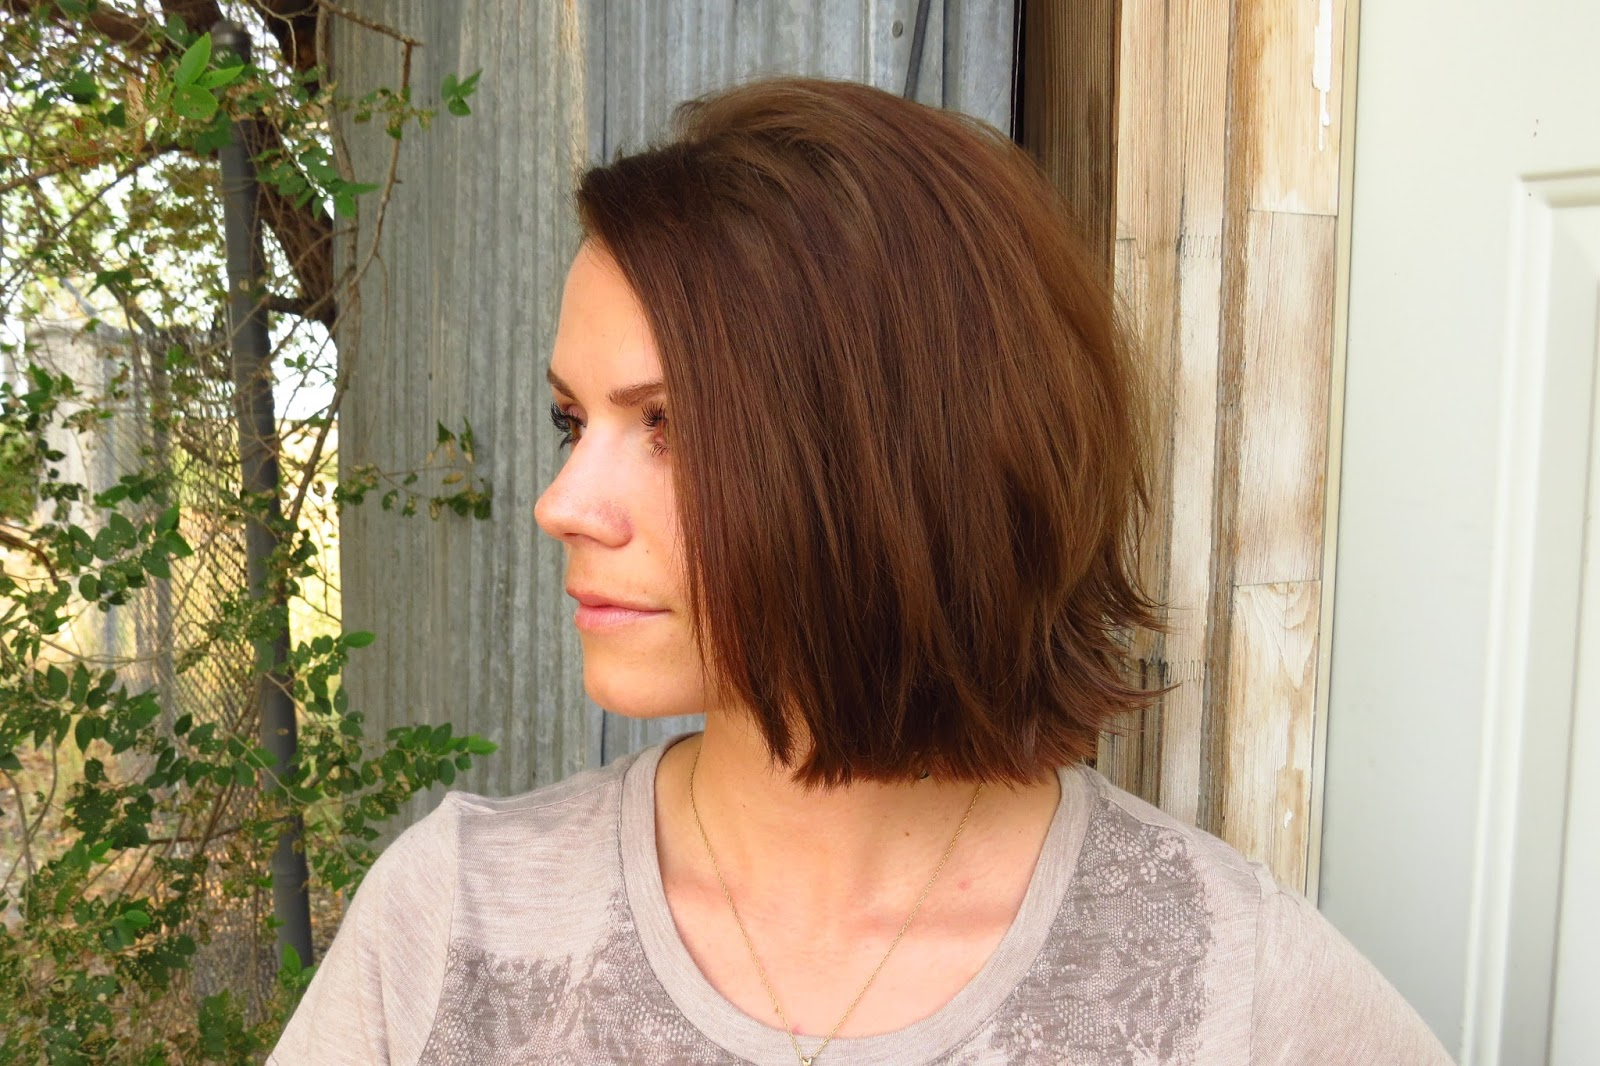 Outstanding Bye Bye Beehive A Hairstyle Blog Straight And Flipped Short Hairstyles Gunalazisus